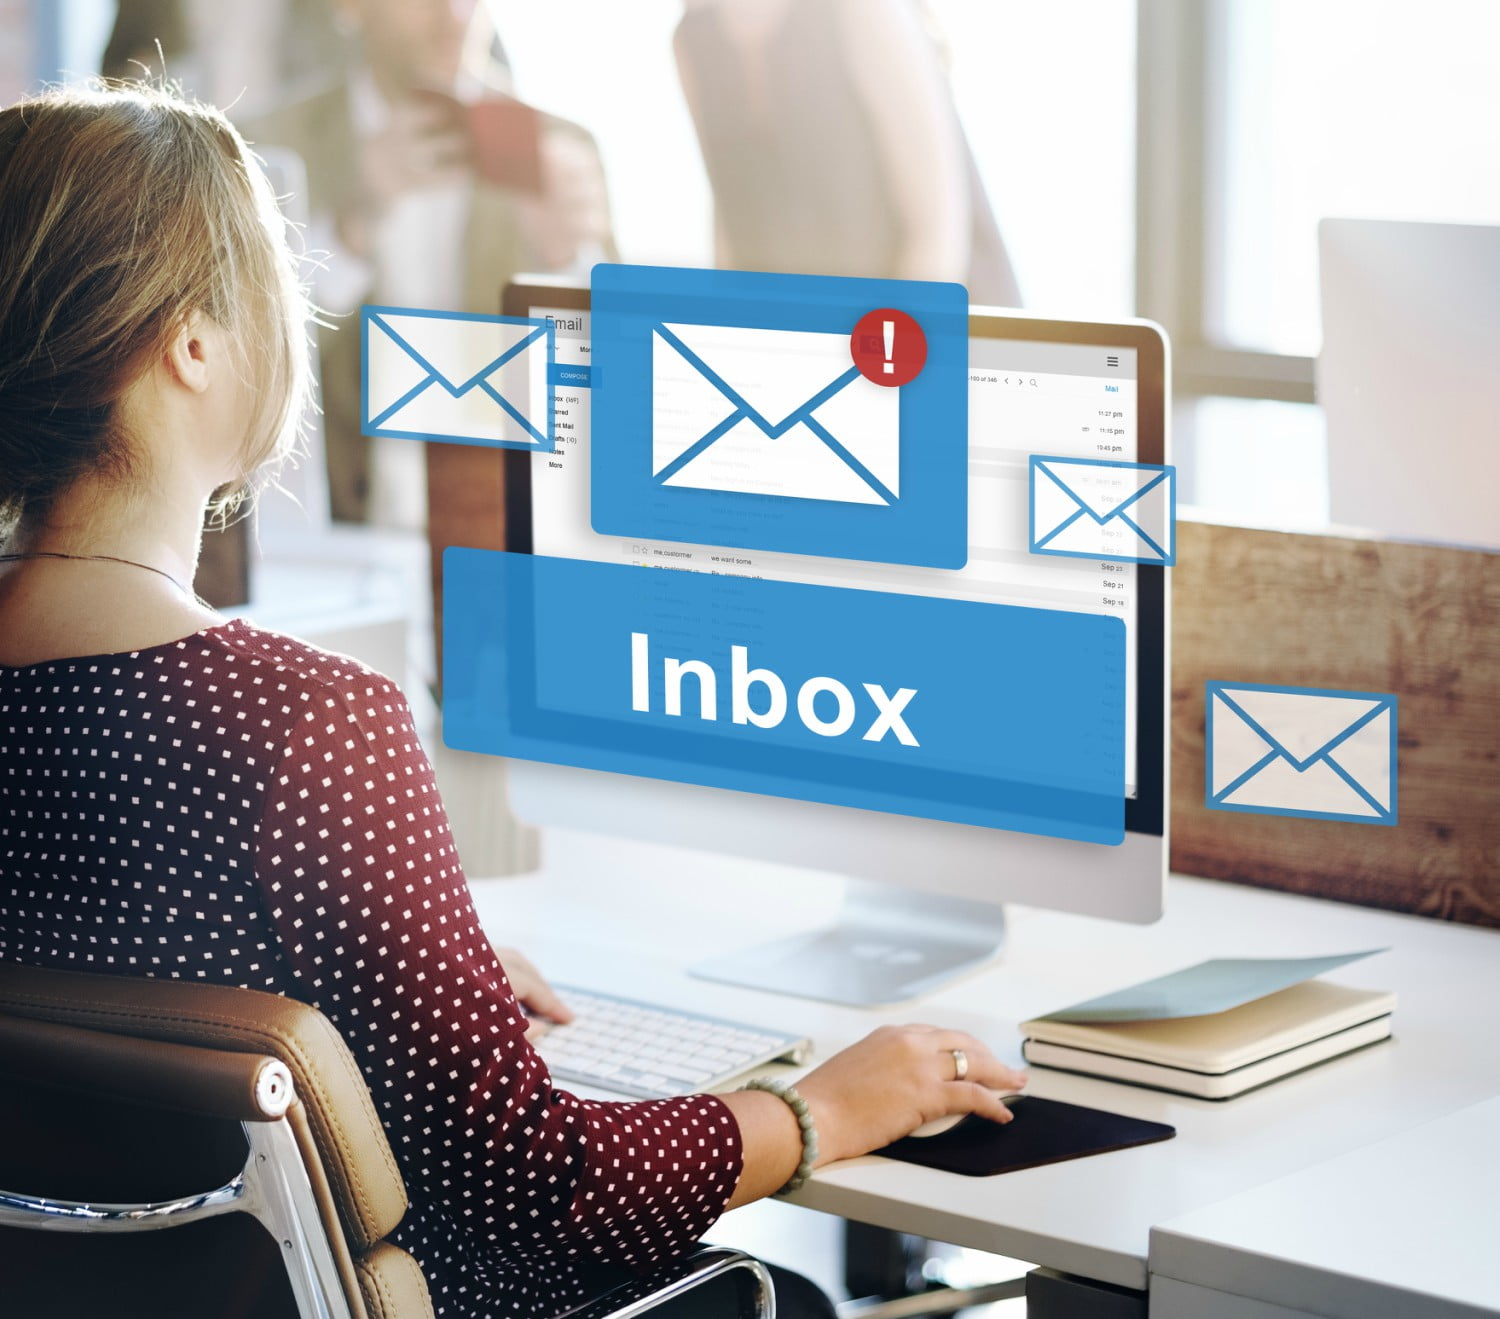 10 Easy Steps To Get Rid Of Bellsouth Email Login Error